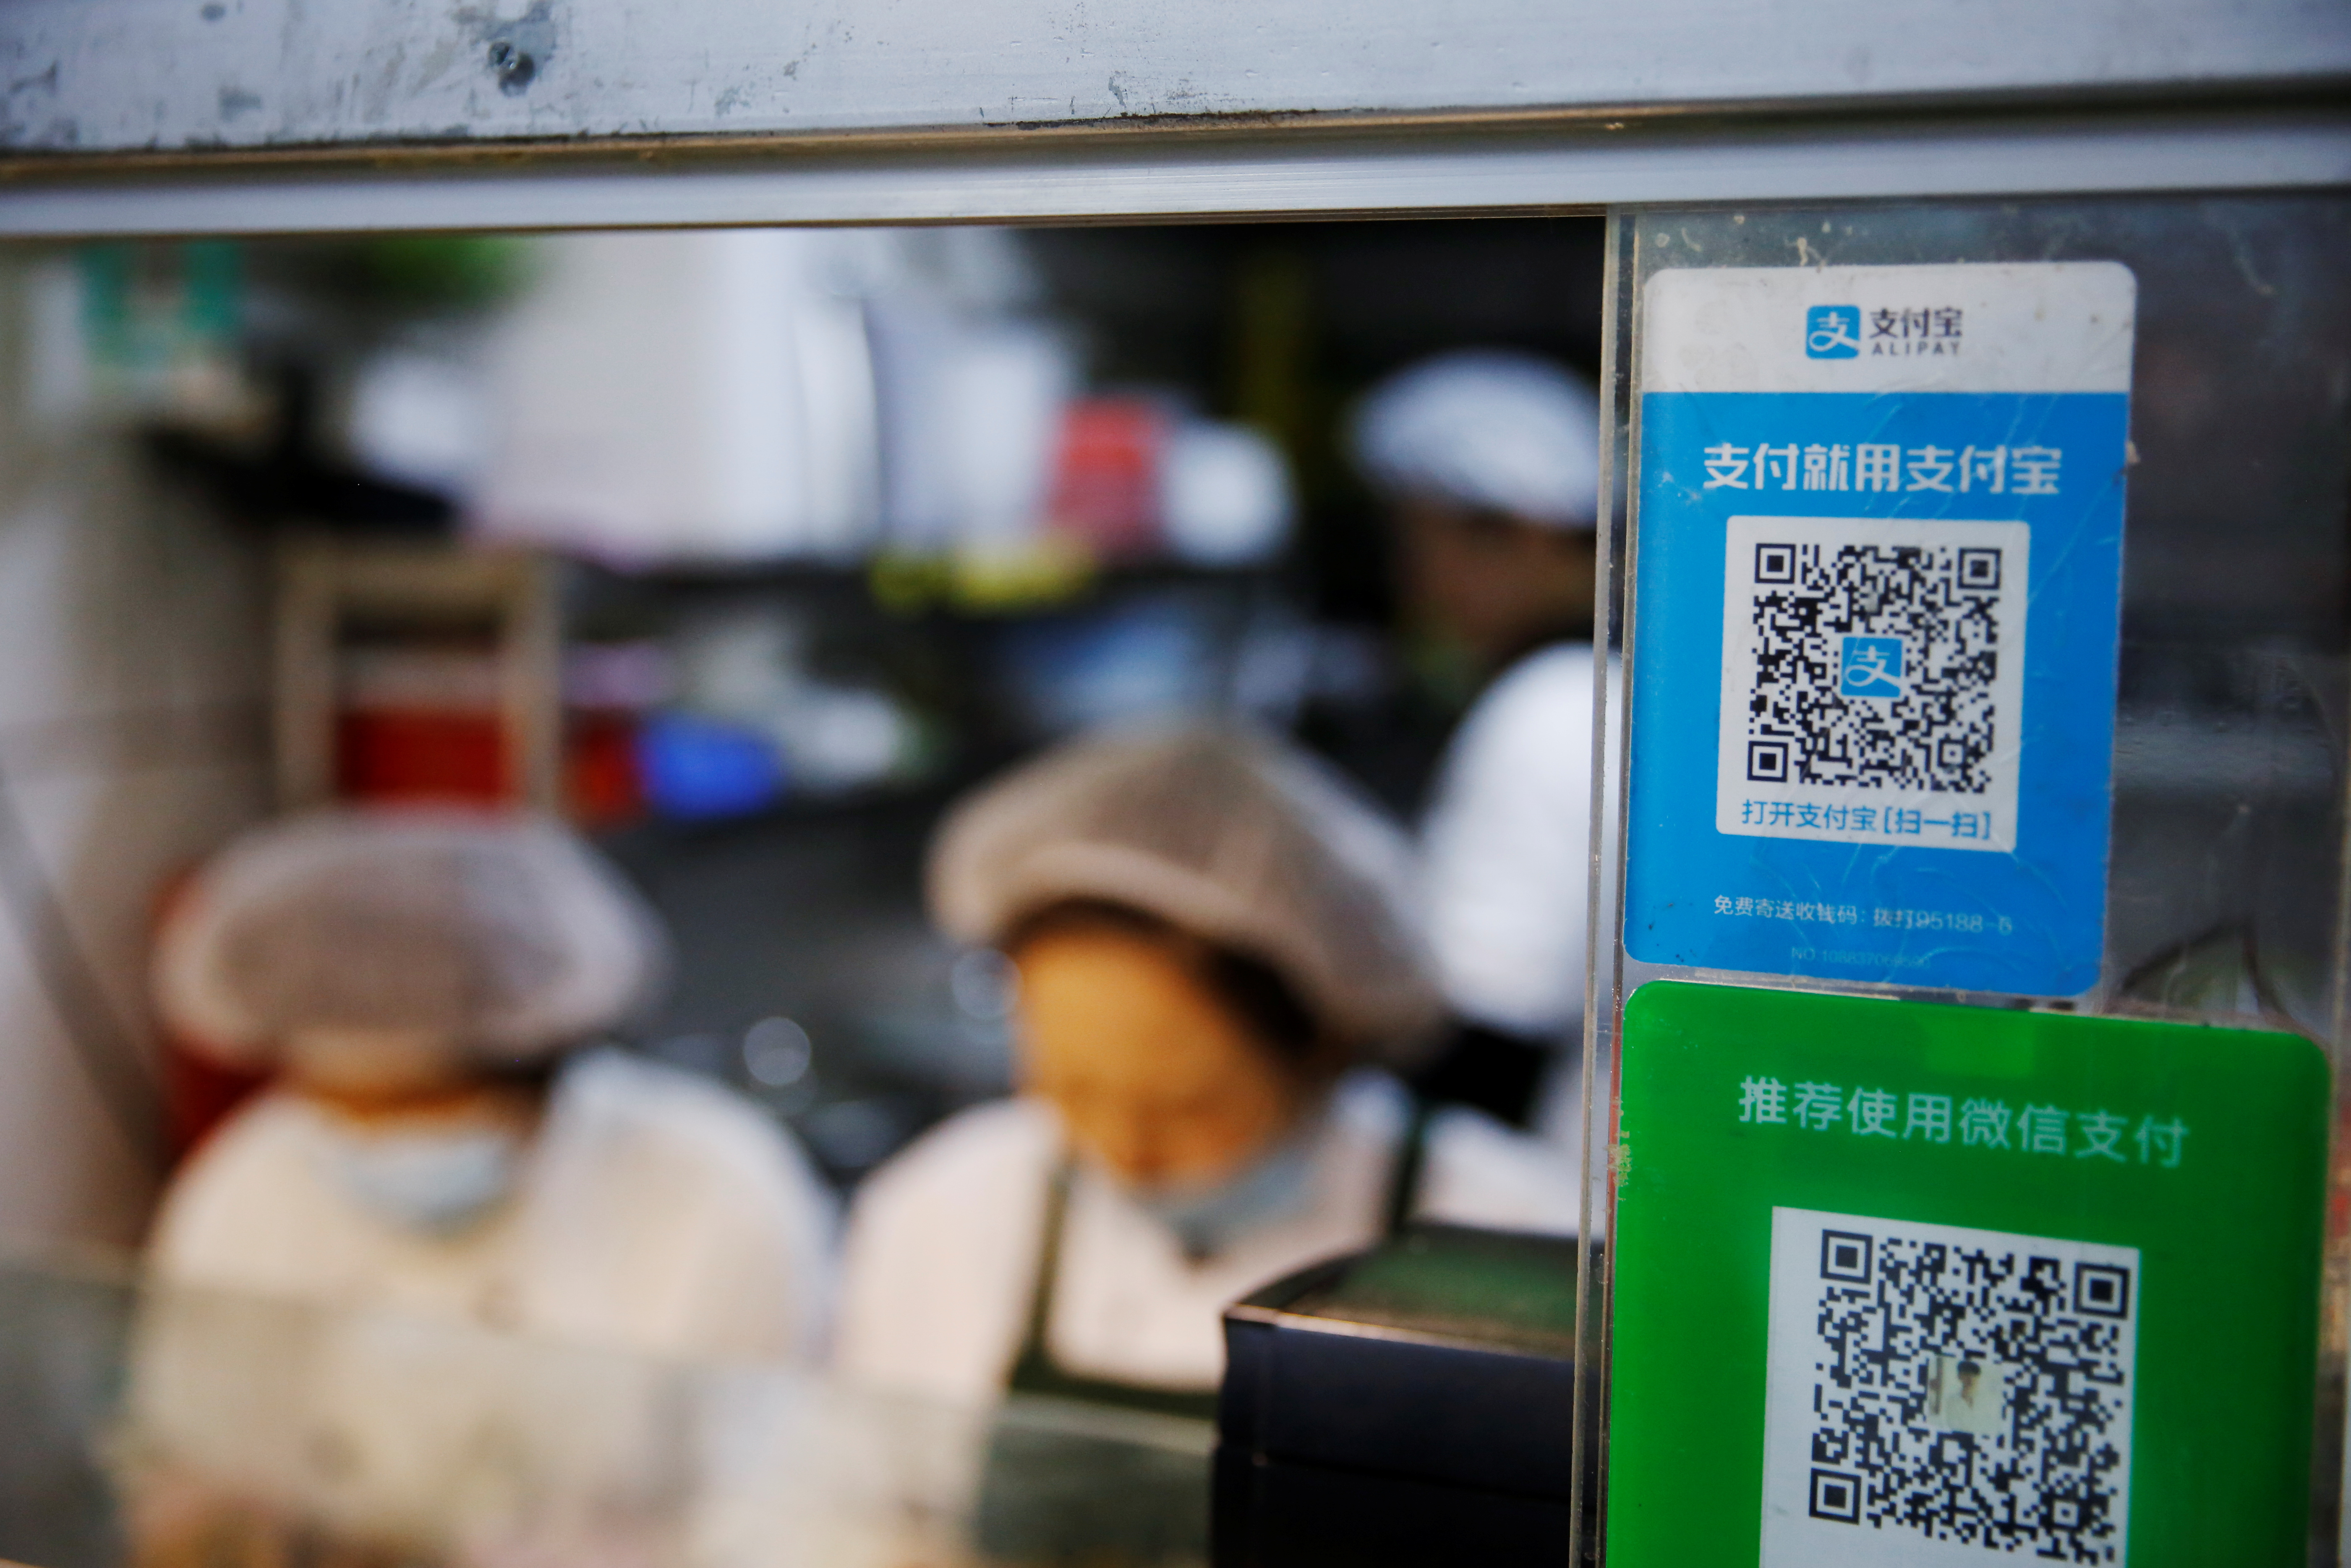 A QR code of digital payment device Alipay by Ant Group, an affiliate of Alibaba Group Holding, is seen next to a QR code of WeChat Pay at a food stall inside a market, in Beijing, China November 2, 2020. REUTERS/Tingshu Wang